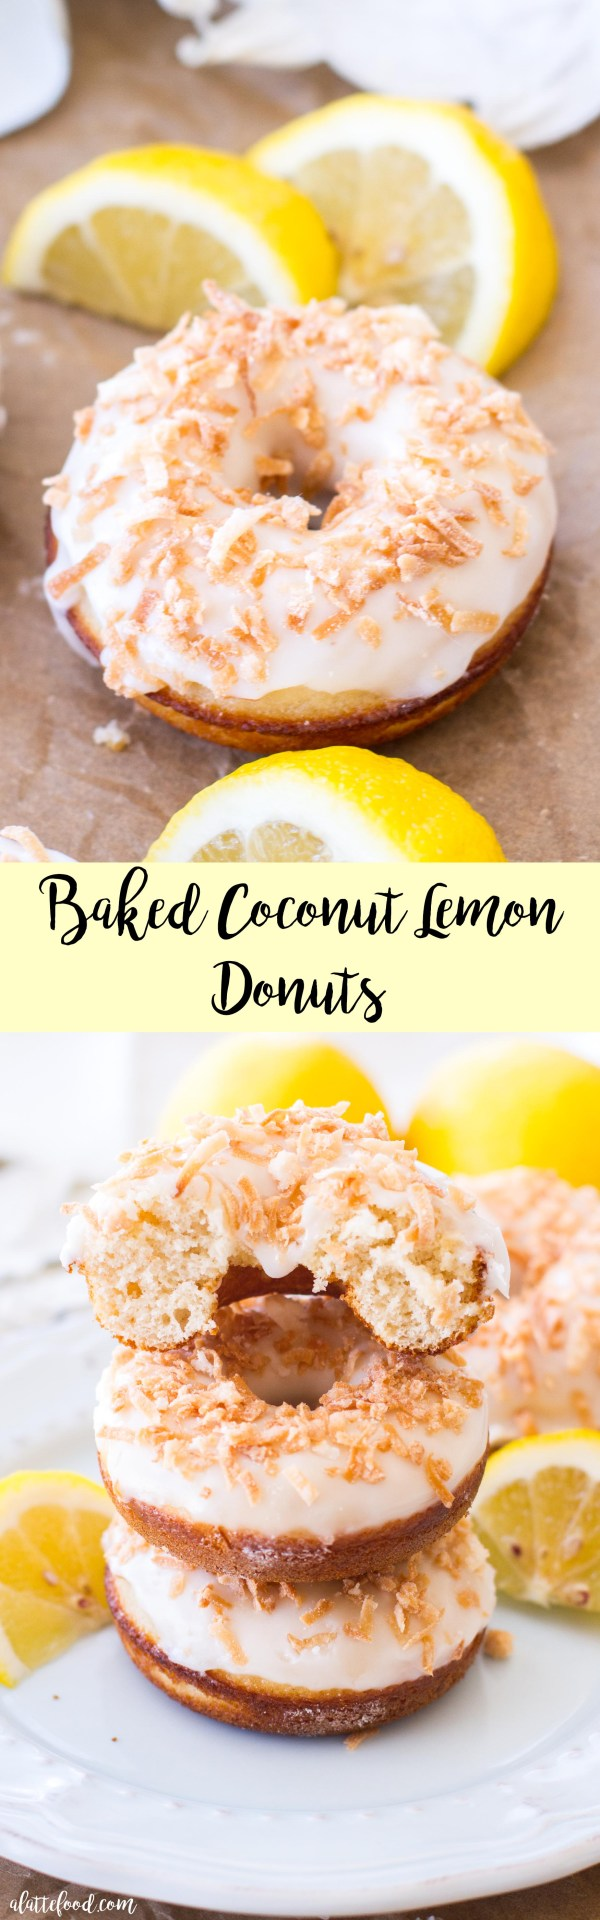 These easy lemon donuts are baked in the oven and topped with a lemon glaze and toasted coconut for a sweet breakfast treat!